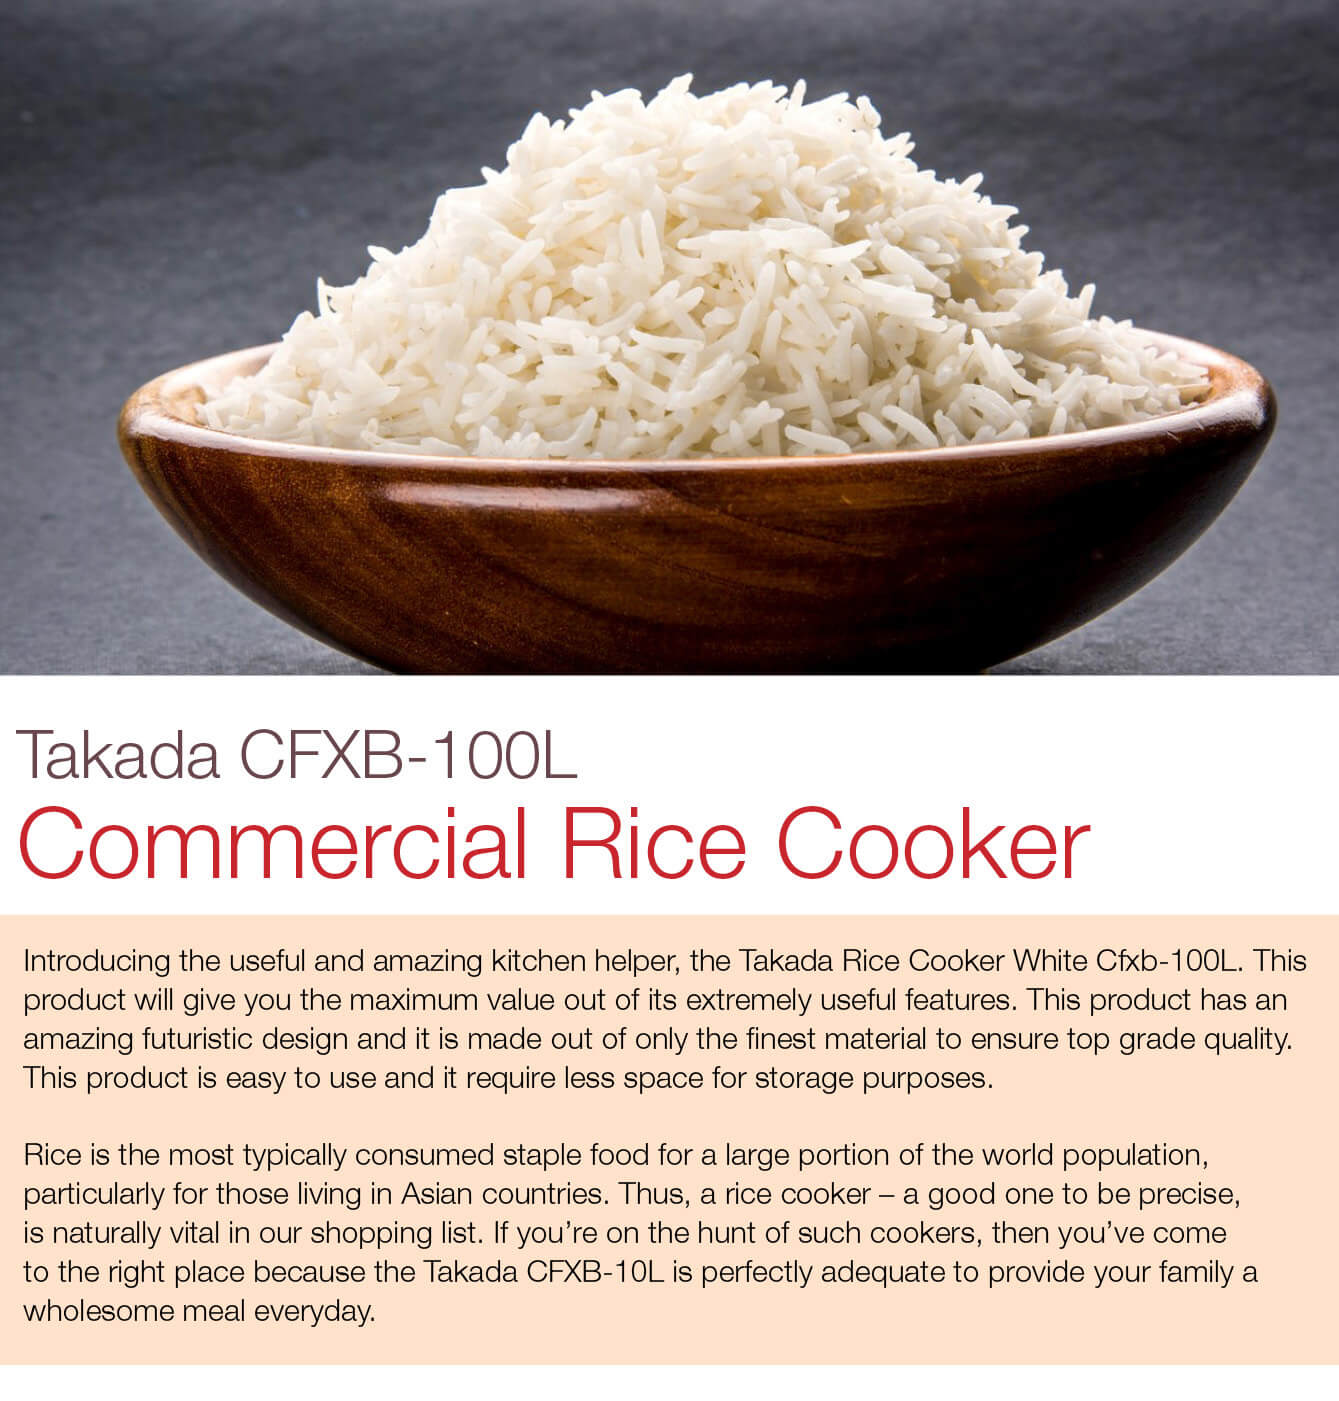 takada-cfxb-100l-rice-cooker